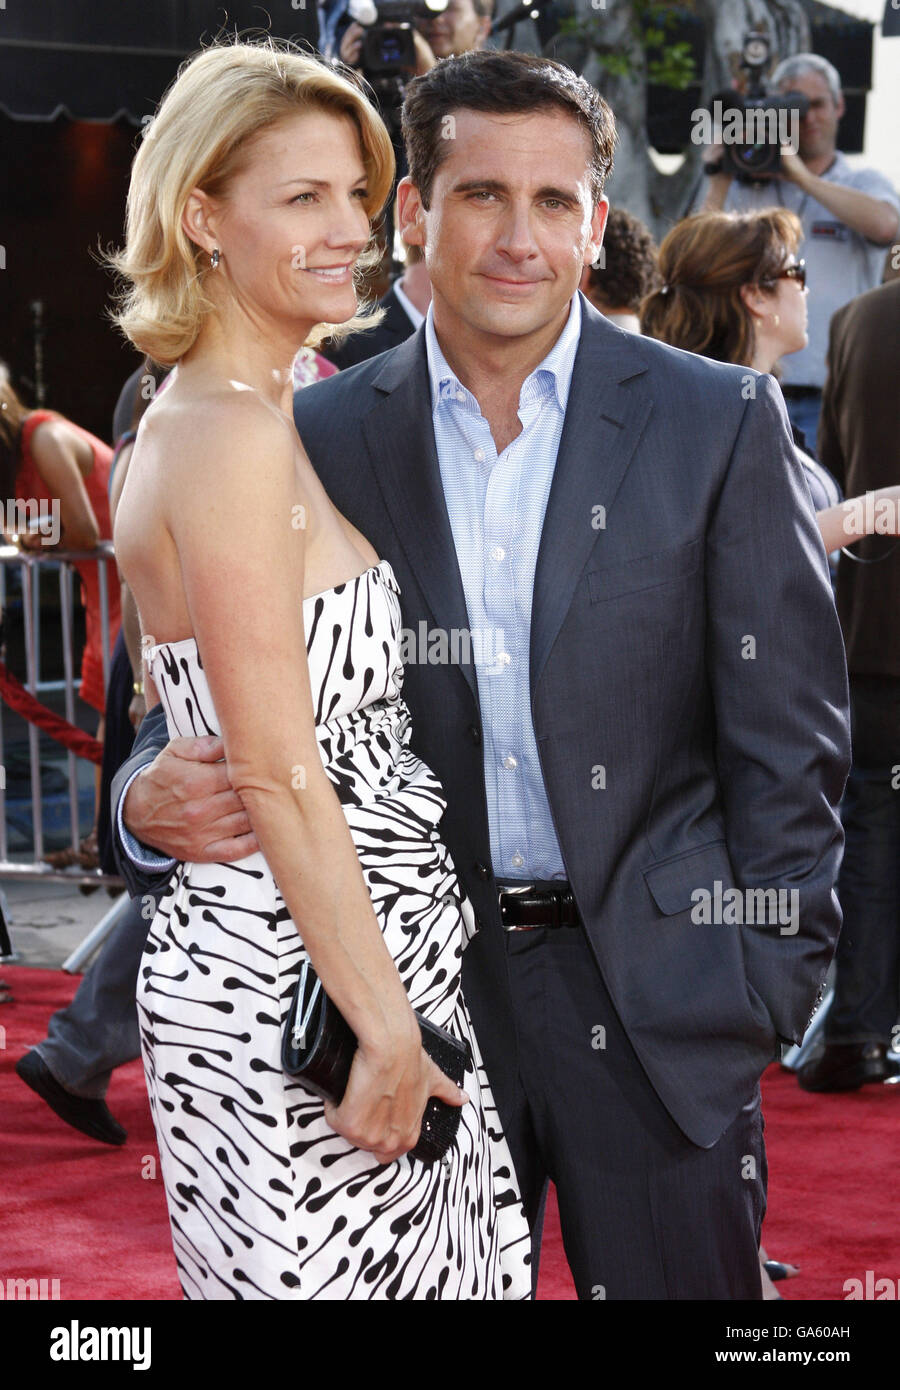 Steve Carell and wife Nancy Walls at the World Premiere of 'Get Smart' held at the Mann Village Theater - Stock Image